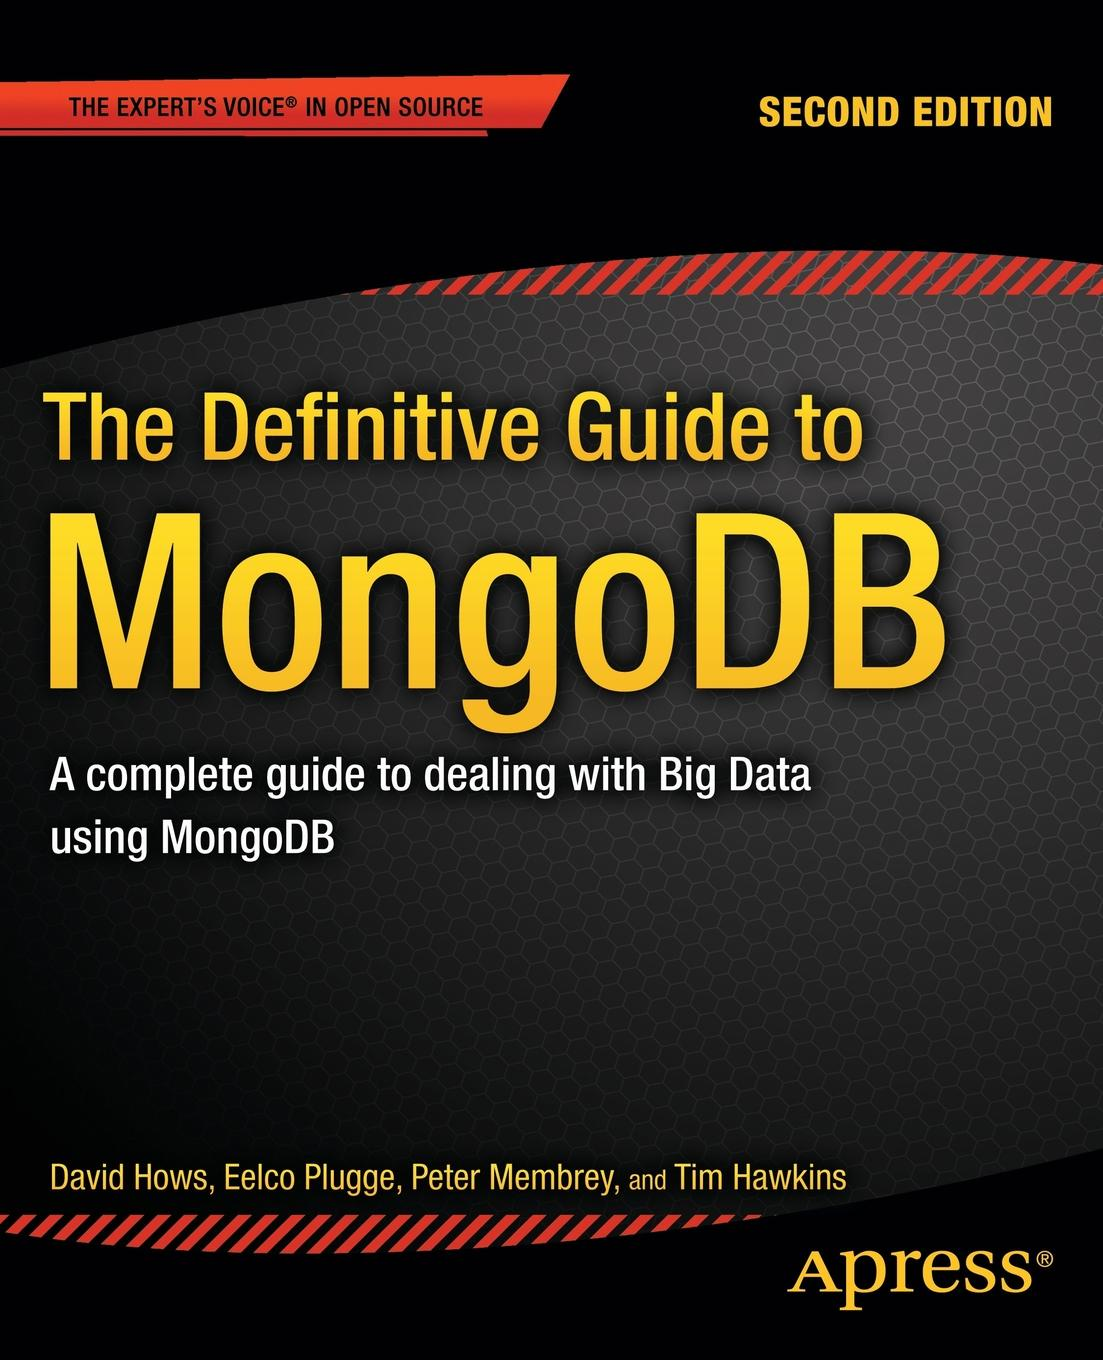 David Hows, Eelco Plugge, Peter Membrey The Definitive Guide to Mongodb. A Complete Guide to Dealing with Big Data Using Mongodb frederic brandt 10 minutes 10 years your definitive guide to a beautiful and youthful